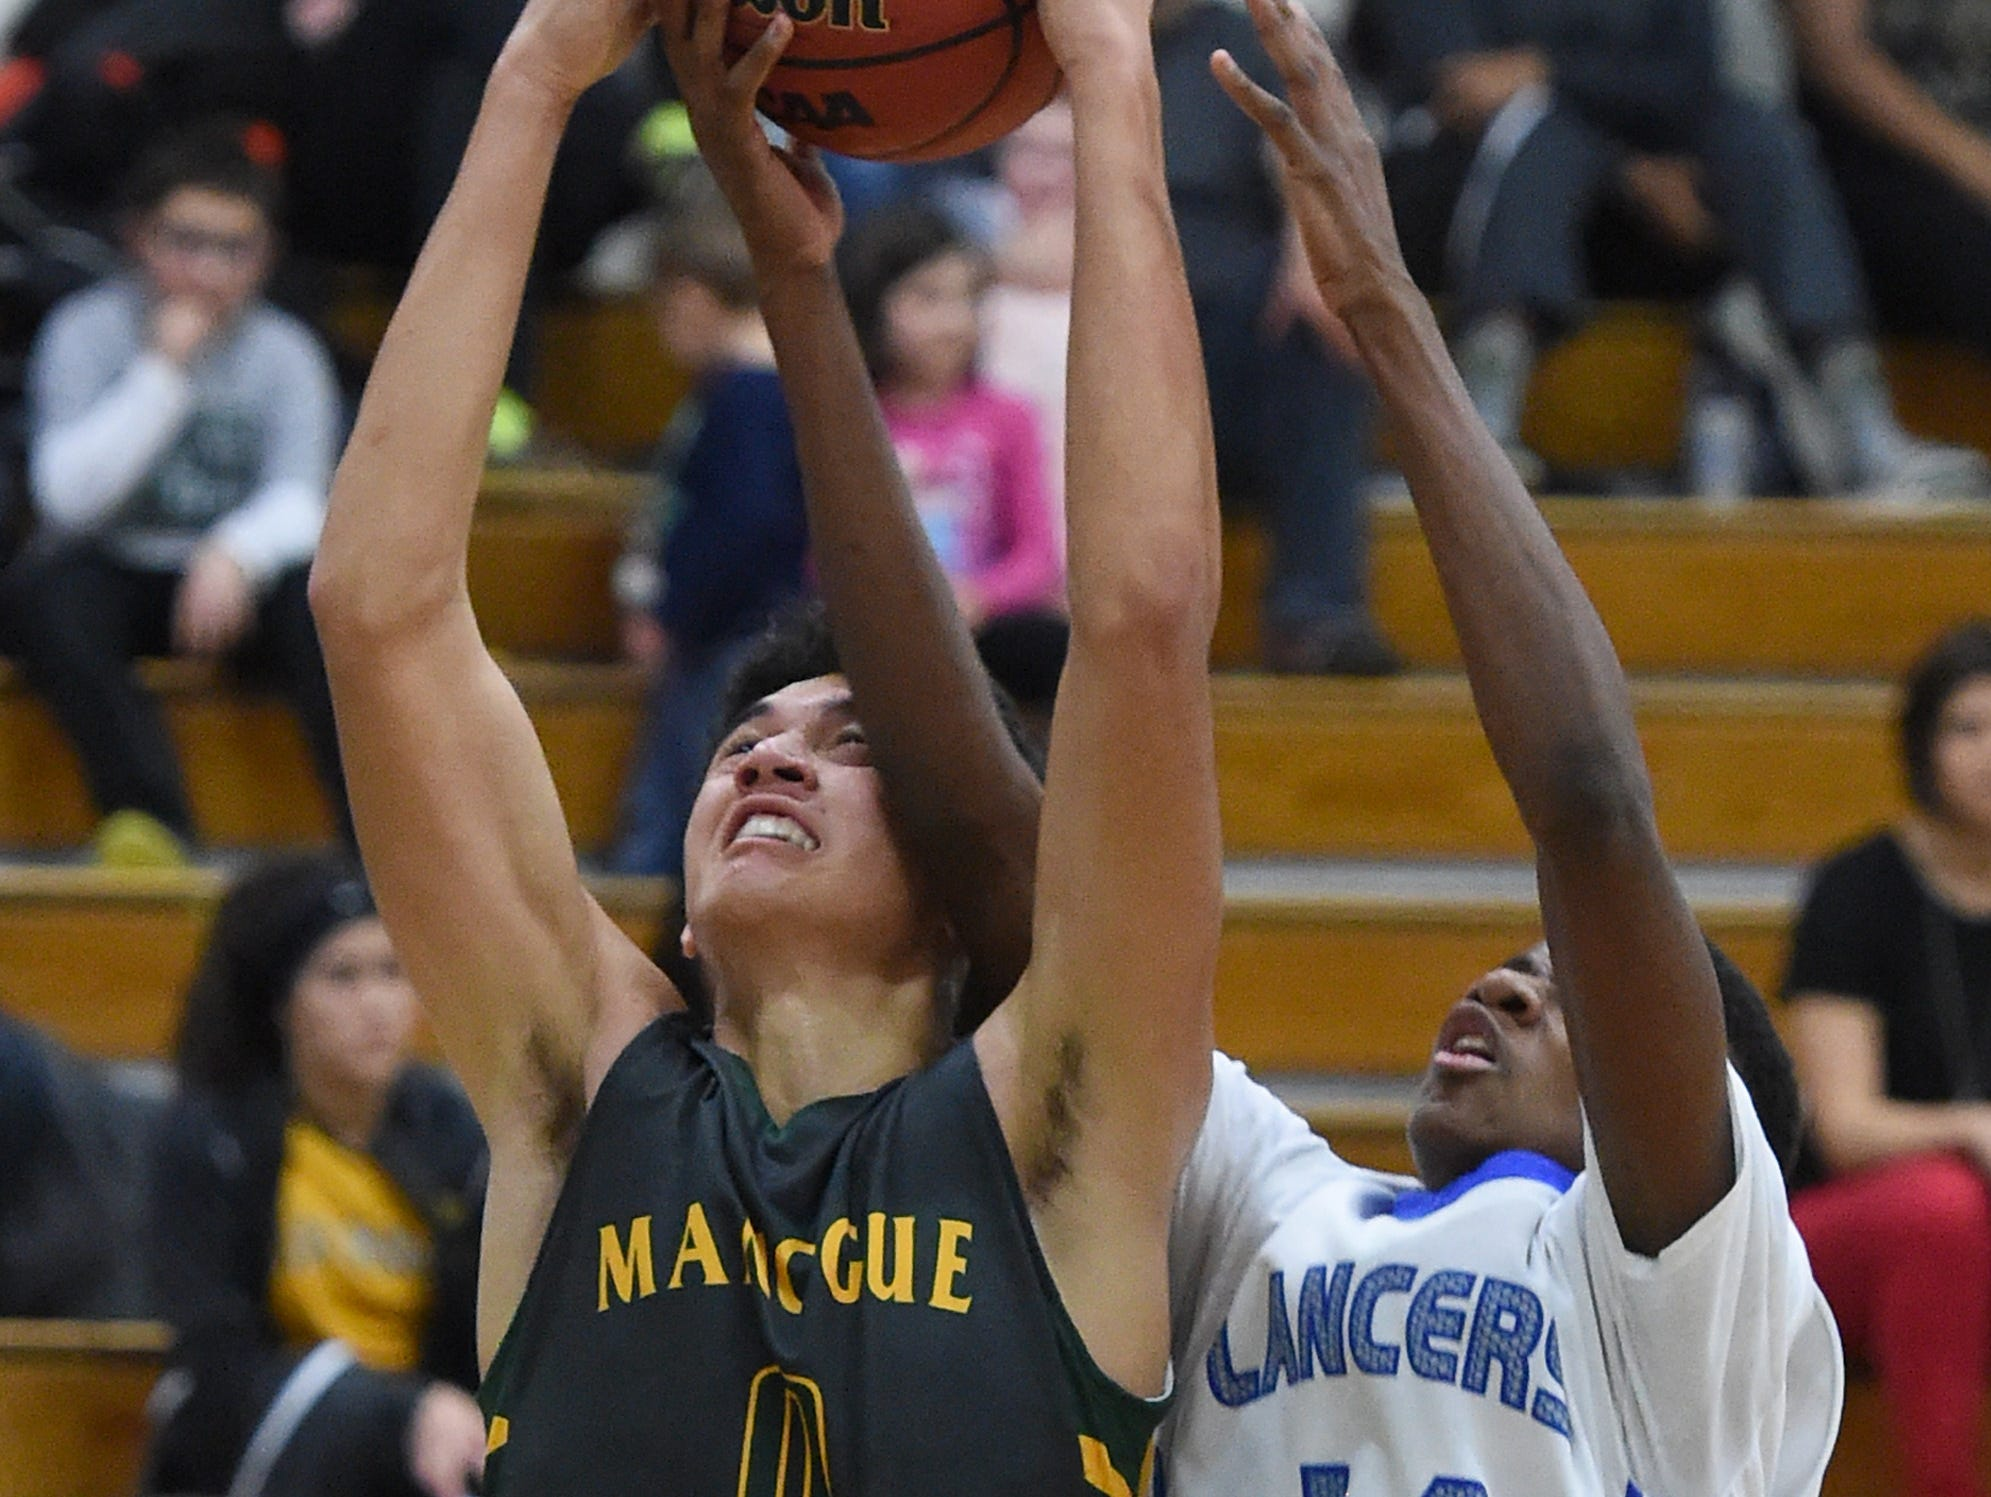 Bishop Manogue's Brevon Bansuelo and McQueen's Orlando Easter battle for the rebound in the first half of Tuesday's game at McQueen.